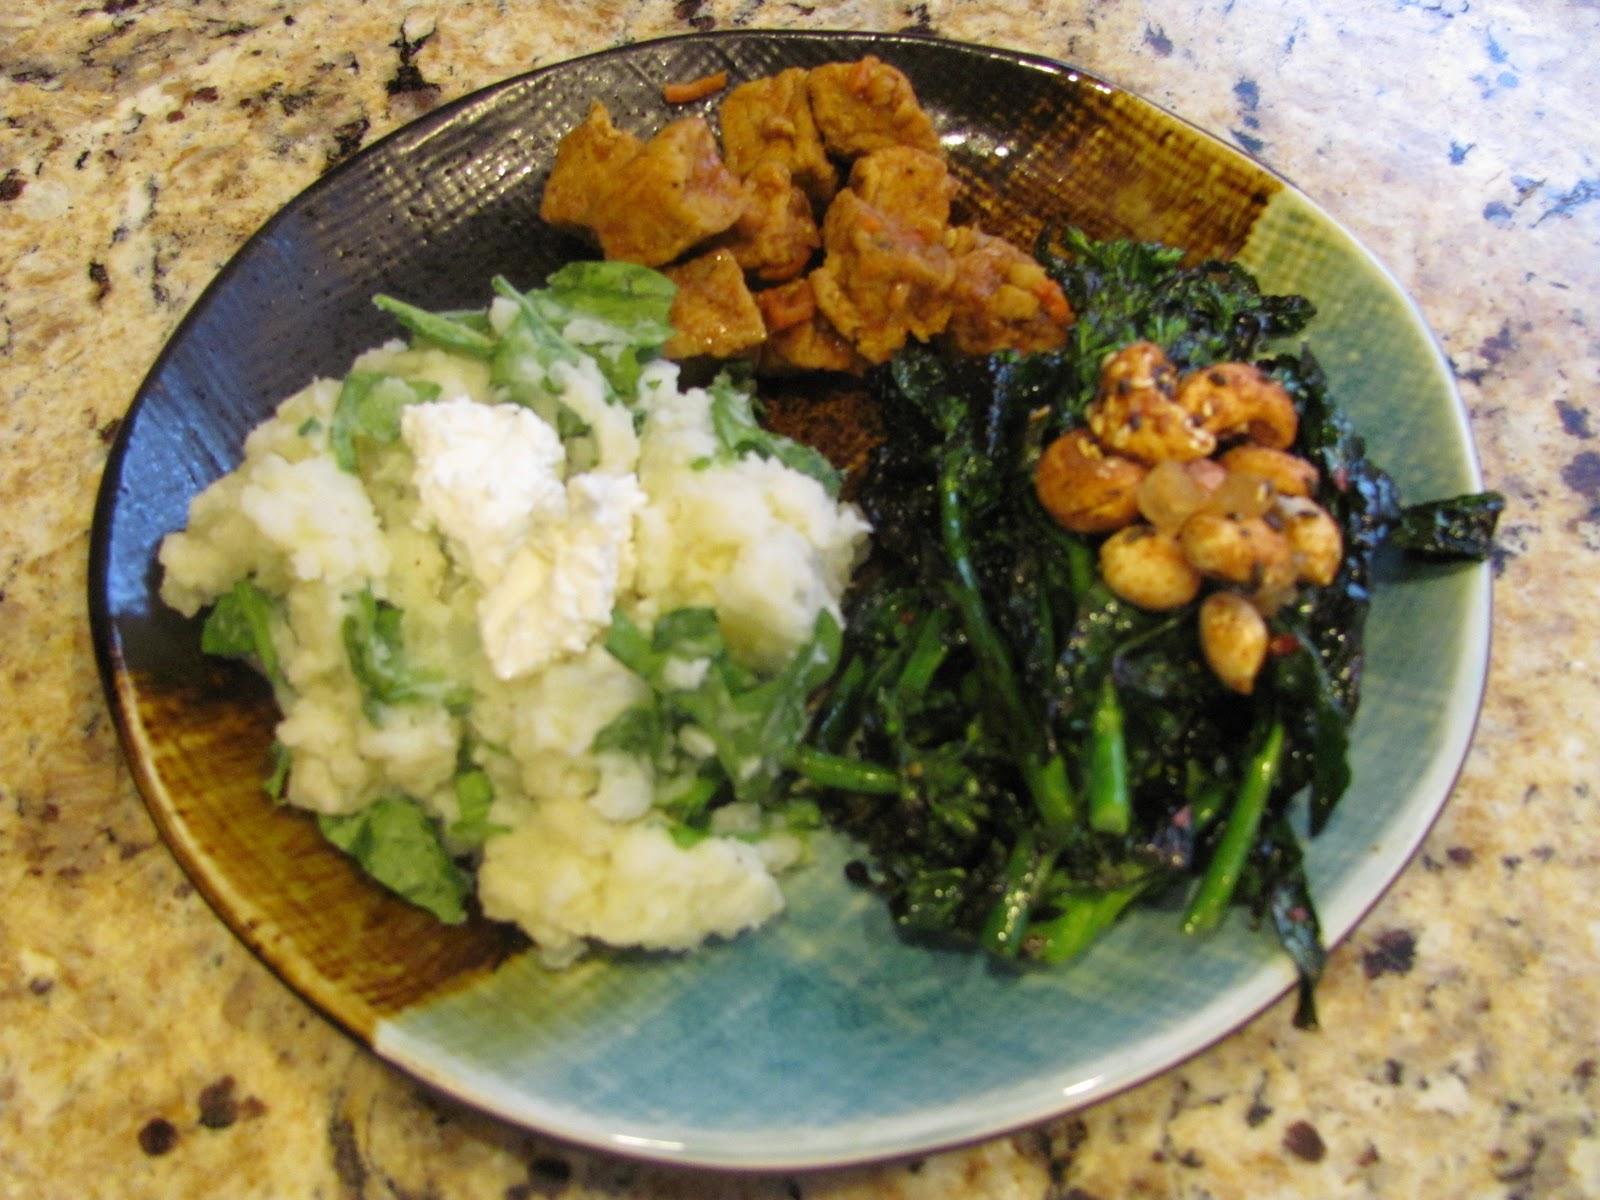 ... : Grilled Kale Raab and Mashed Potatoes with Arugula and Goat Cheese